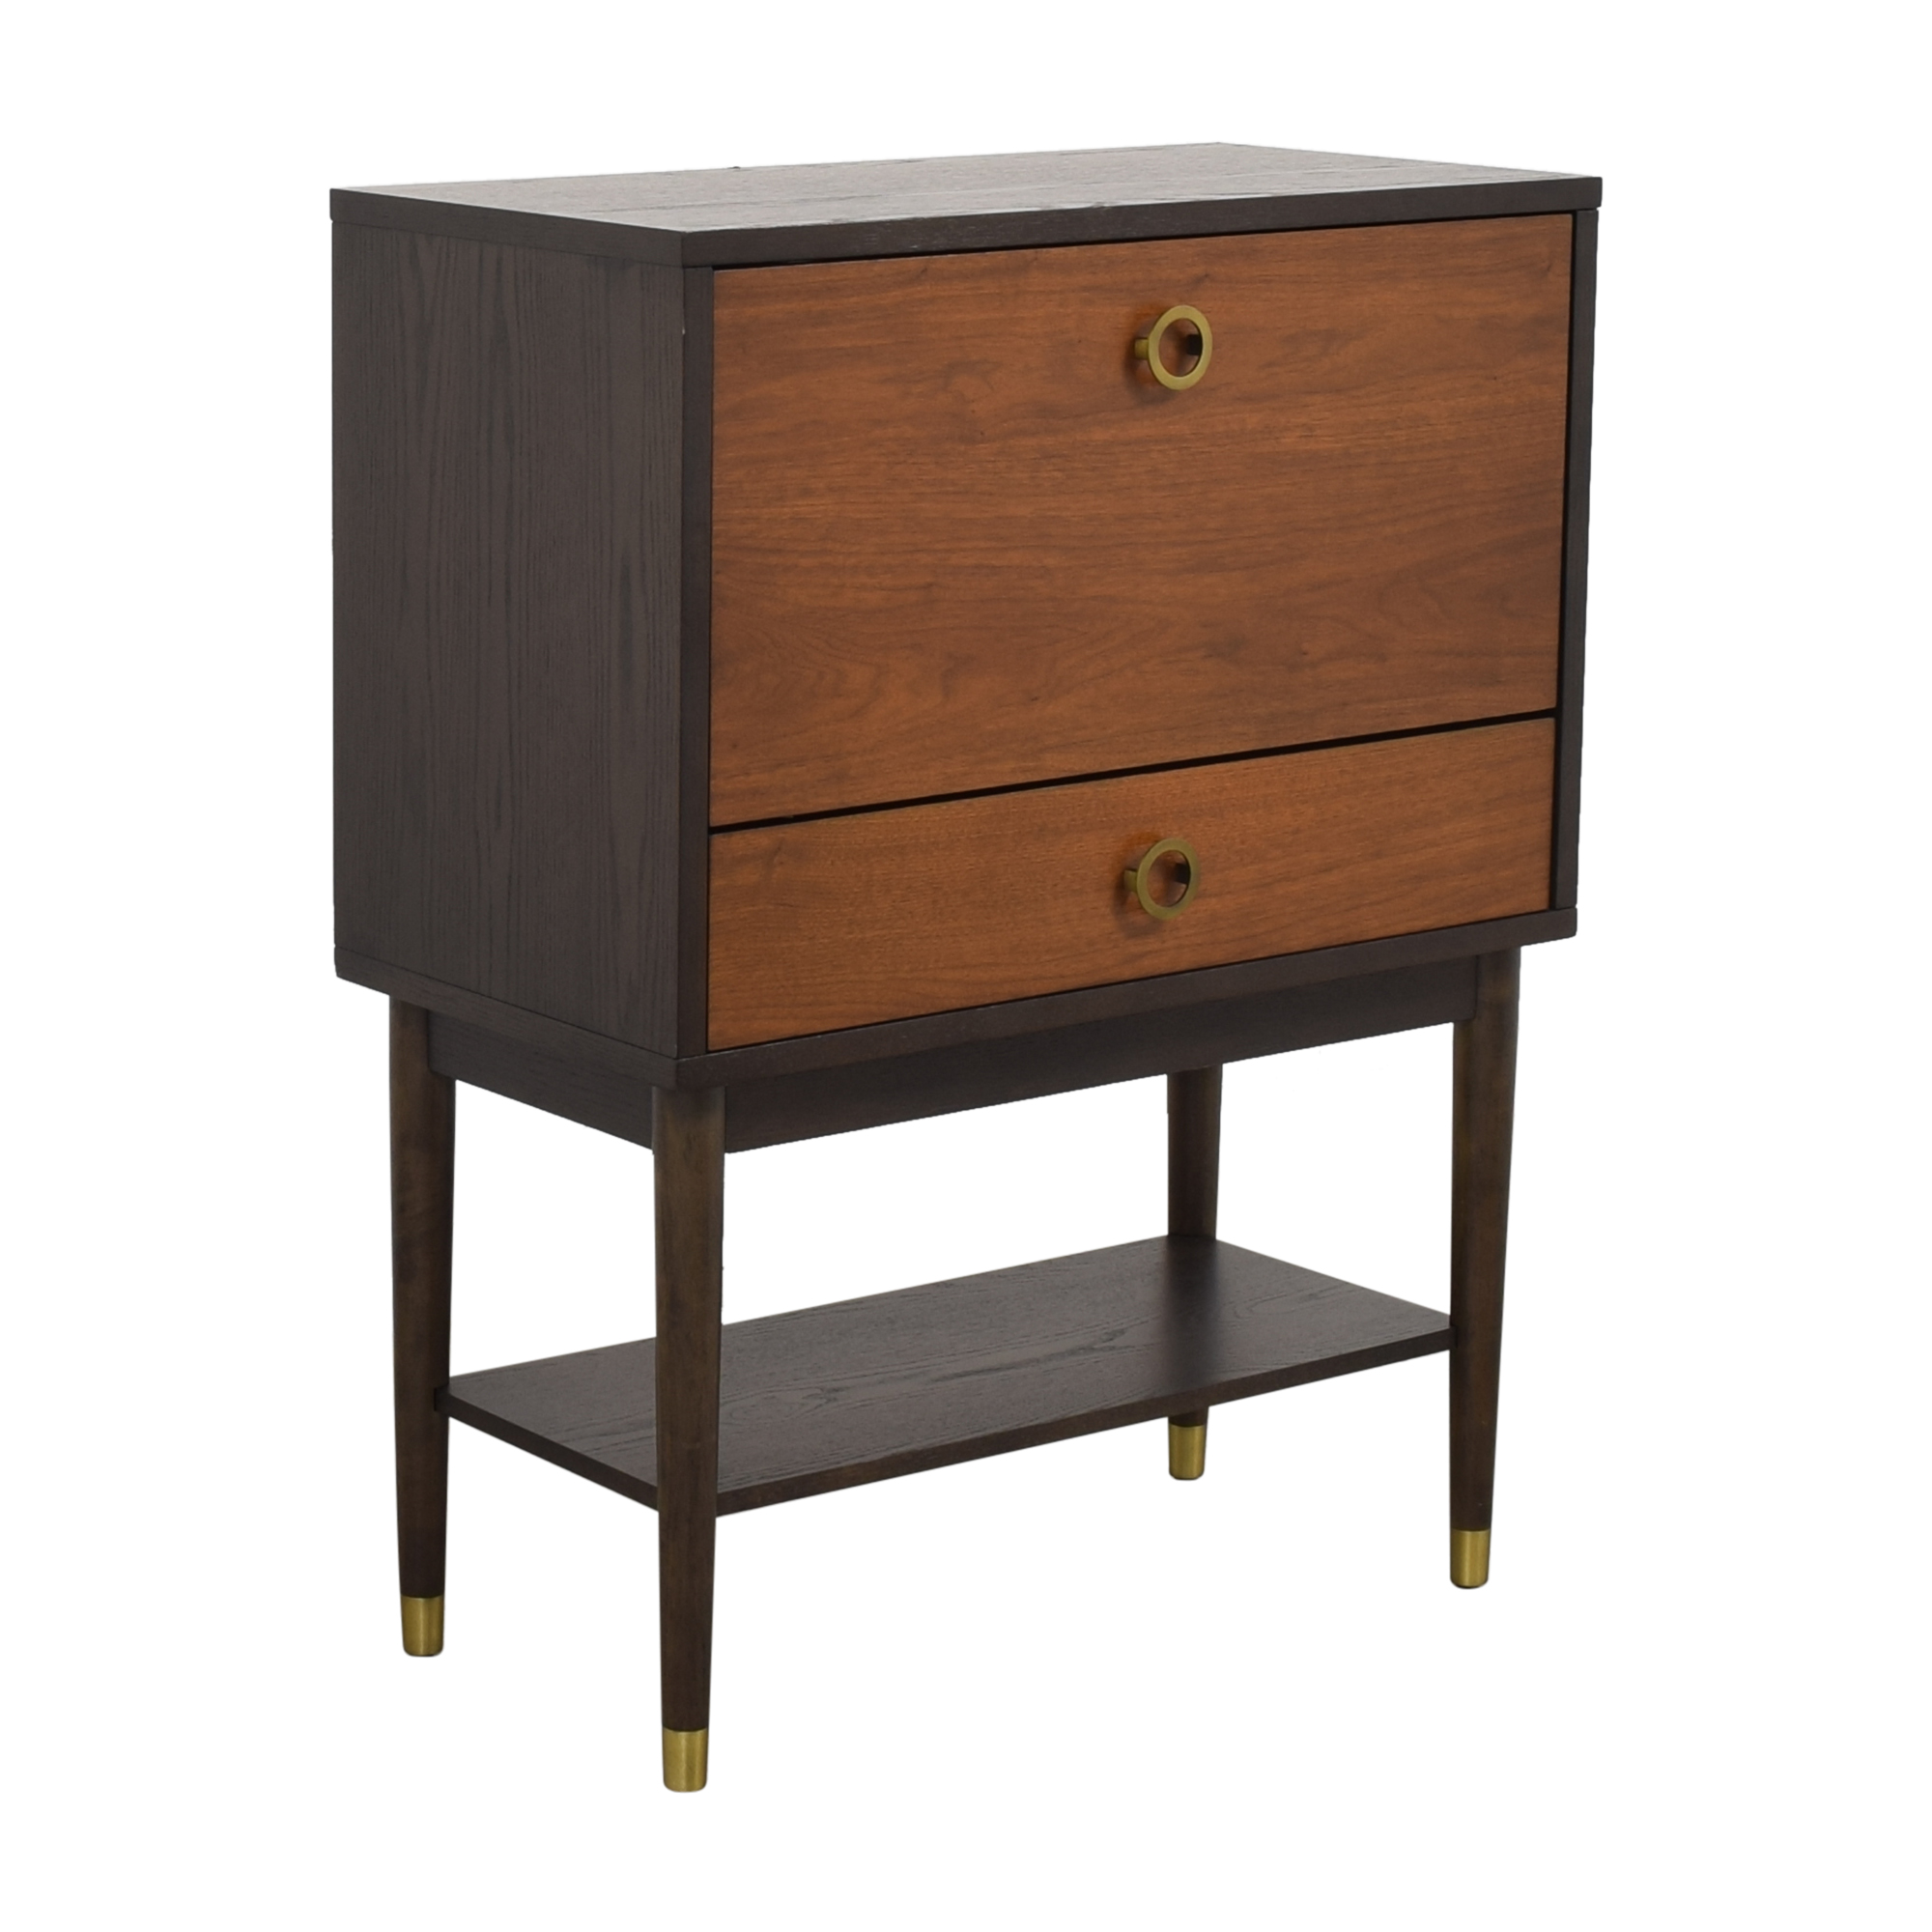 West Elm Dobson Flip Down Bar Cabinet / Cabinets & Sideboards